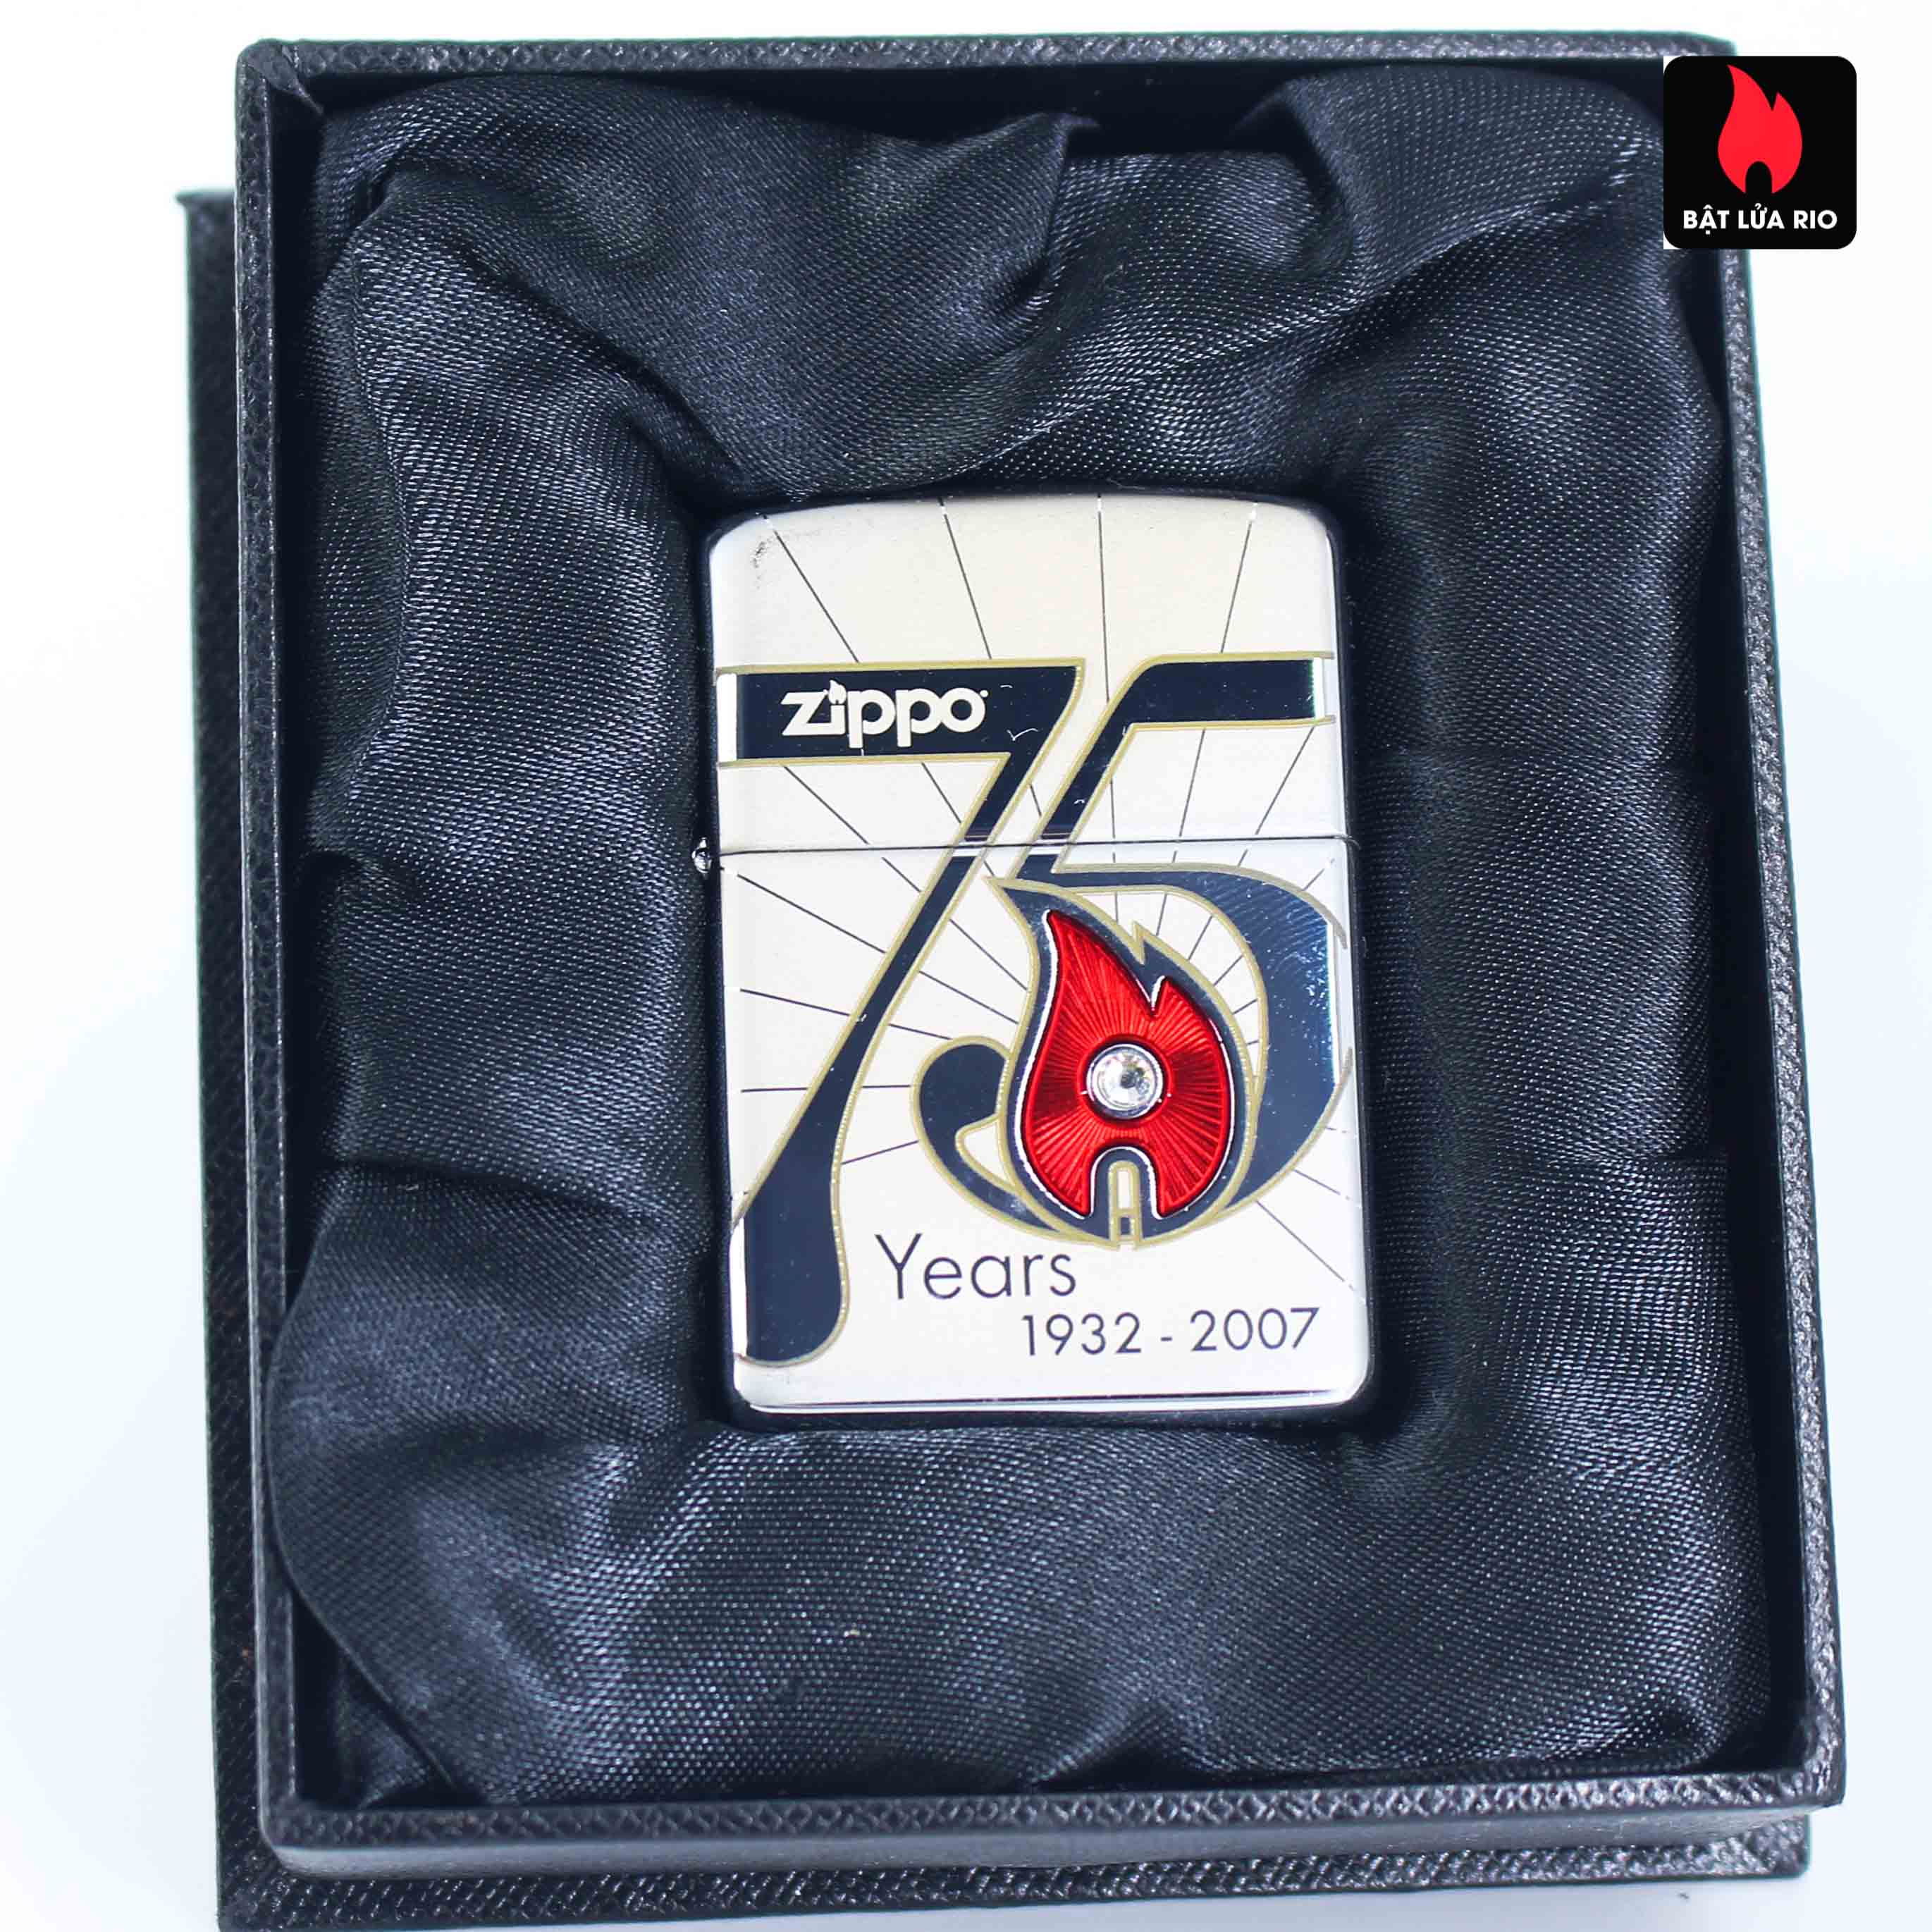 Zippo 2007 – 75th Anniversary Edition – Cambodia – Limited CAM 1 Of 75 1